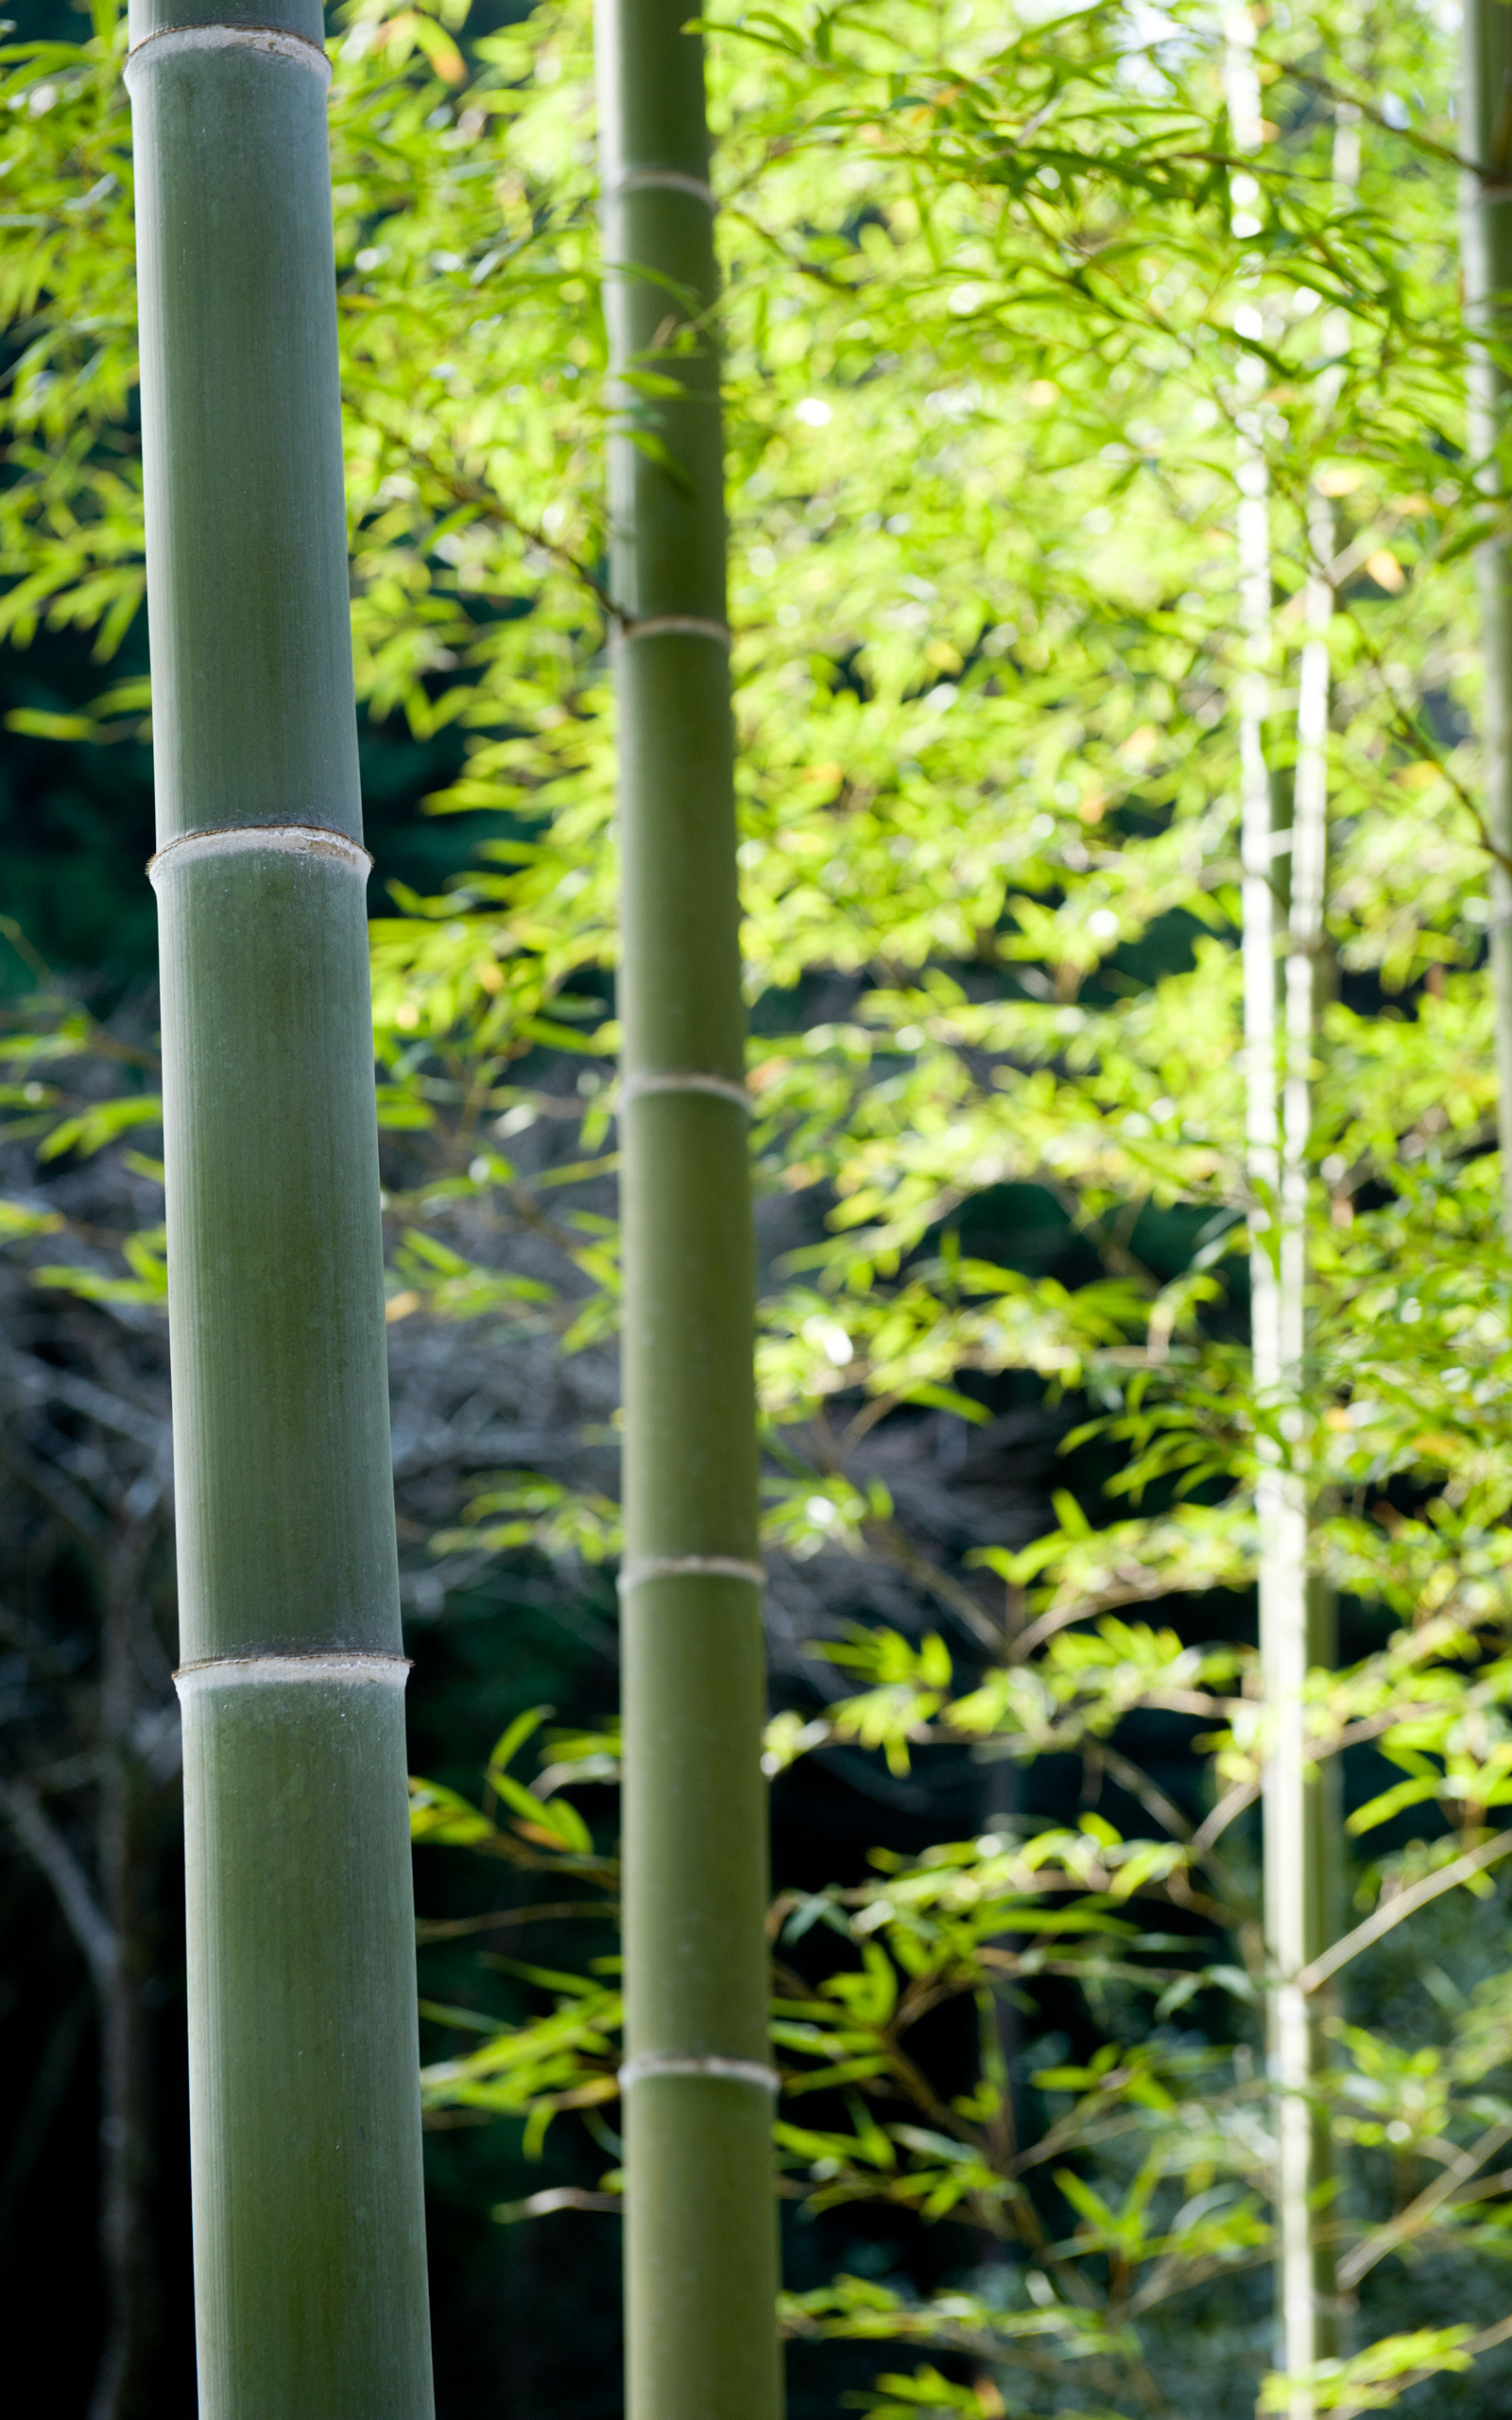 HD Wallpapers 0 HTML code. Jeffrey Friedl's Blog » Today's Photogenic  Adventures in Kyoto